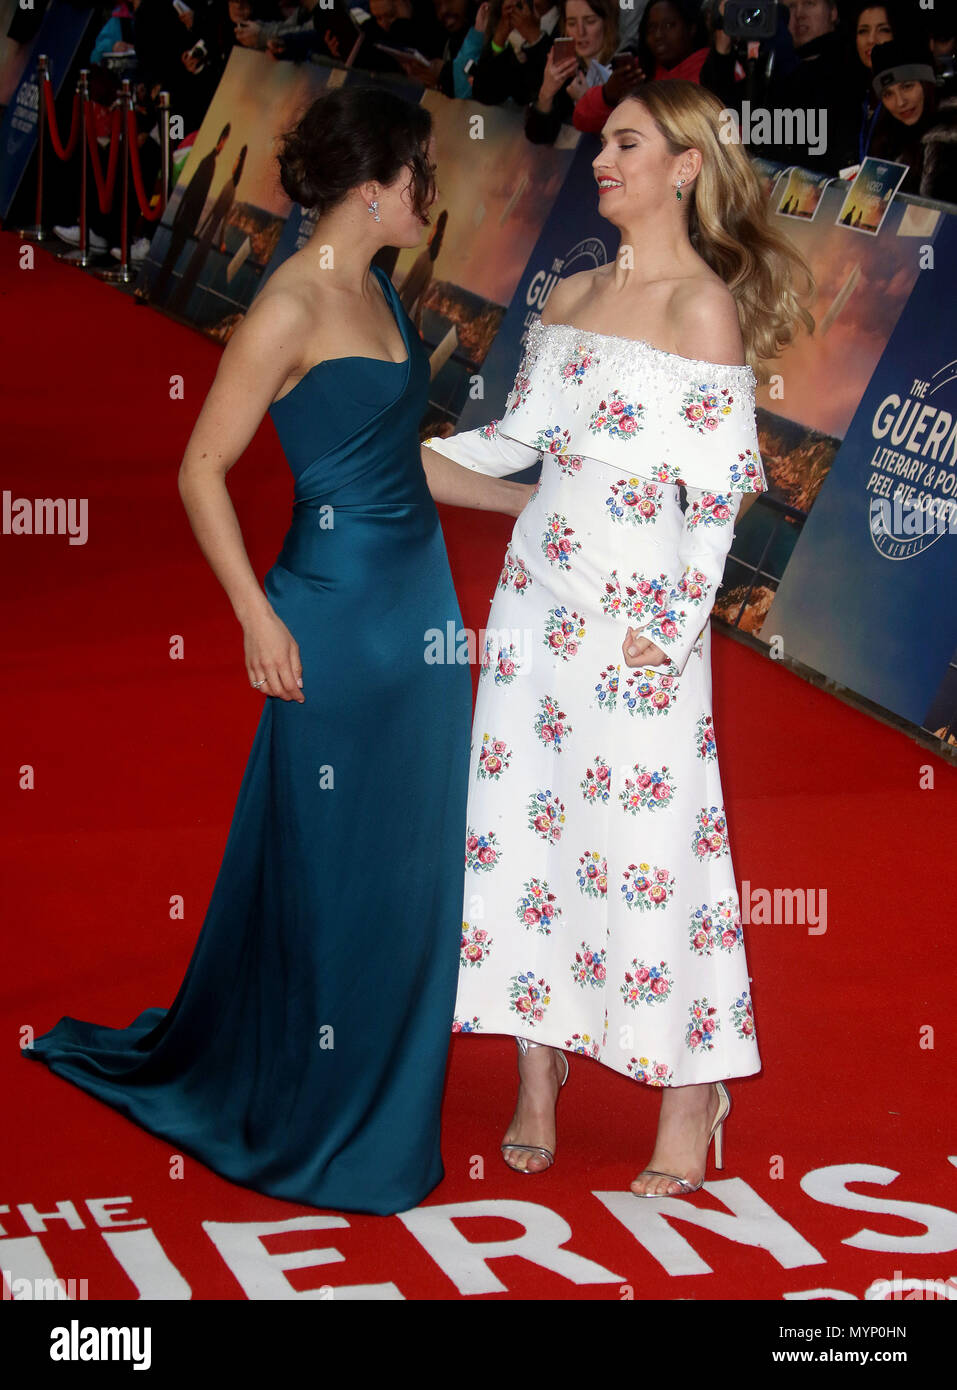 April 9, 2018 - Jessica Brown Findlay and Lily James attending The Guernsey Literary and Potato Peel Pie Society World Premier, Curzon Mayfair in Lond - Stock Image